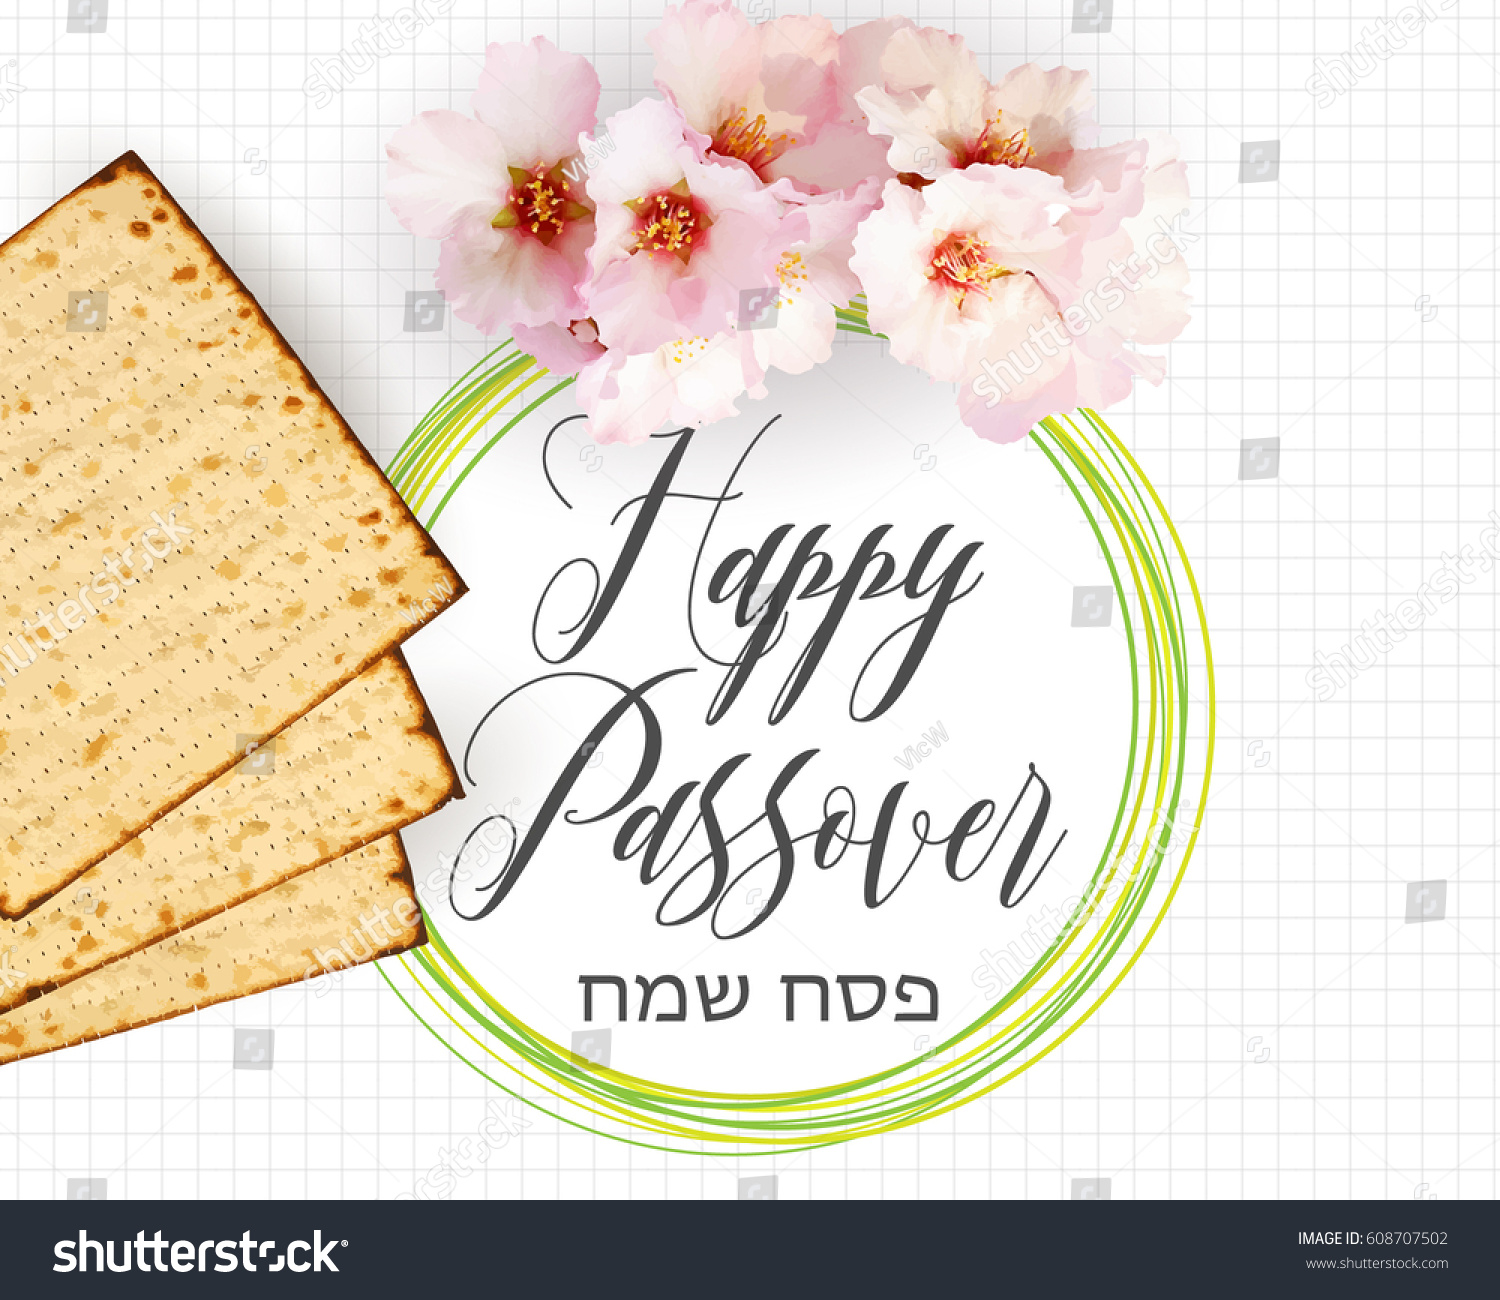 Happy passover traditional jewish holiday background stock vector happy passover traditional jewish holiday background matzah bread almond flowers and text m4hsunfo